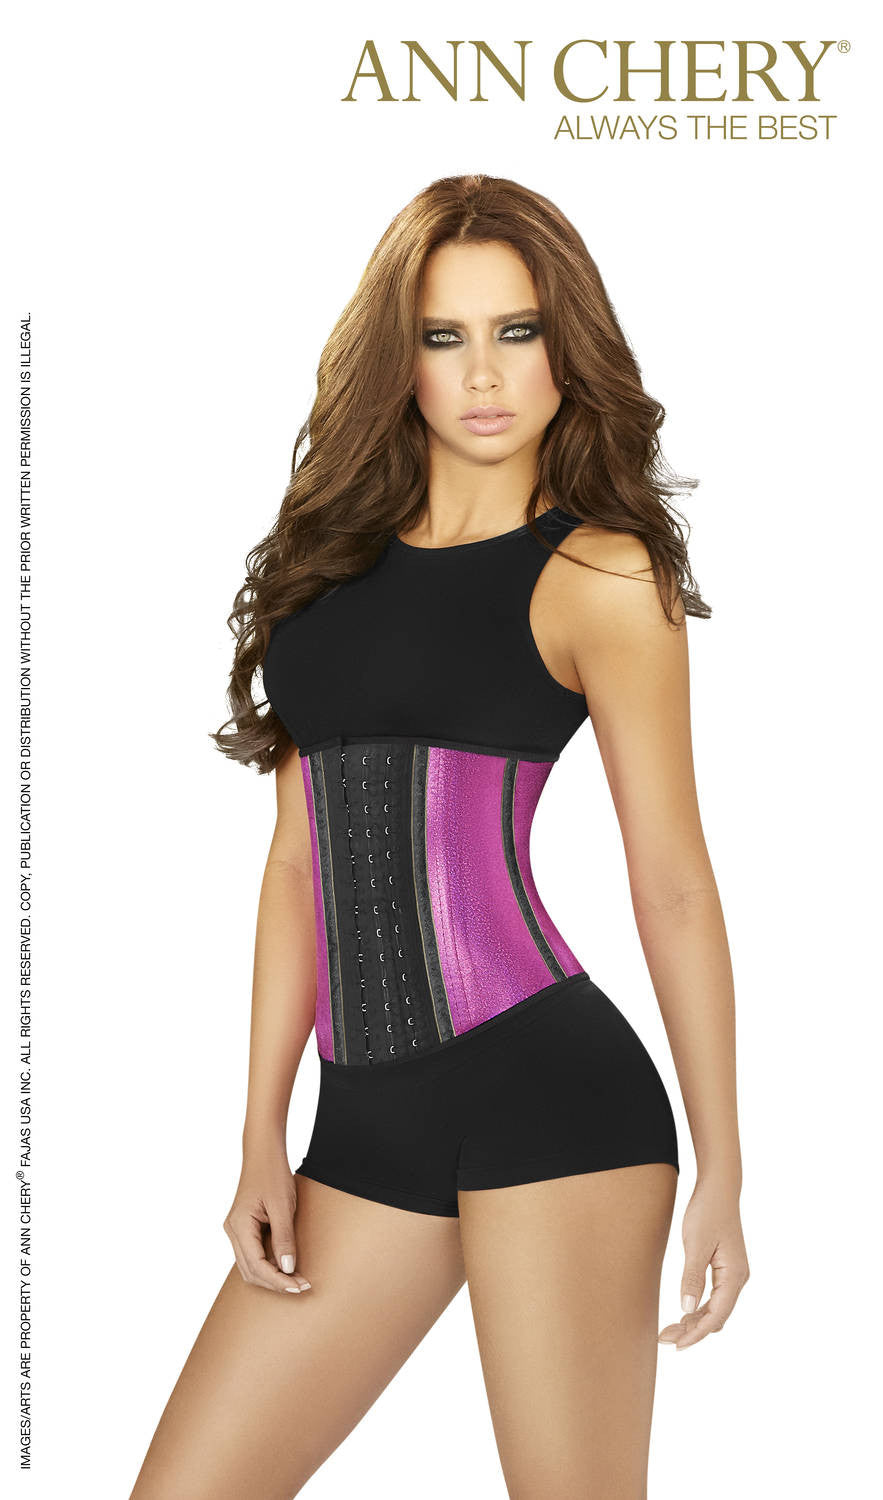 a77c22198e 3 Hooks Latex Metallic Edition Waist Cincher For Women - Fashion. Previous